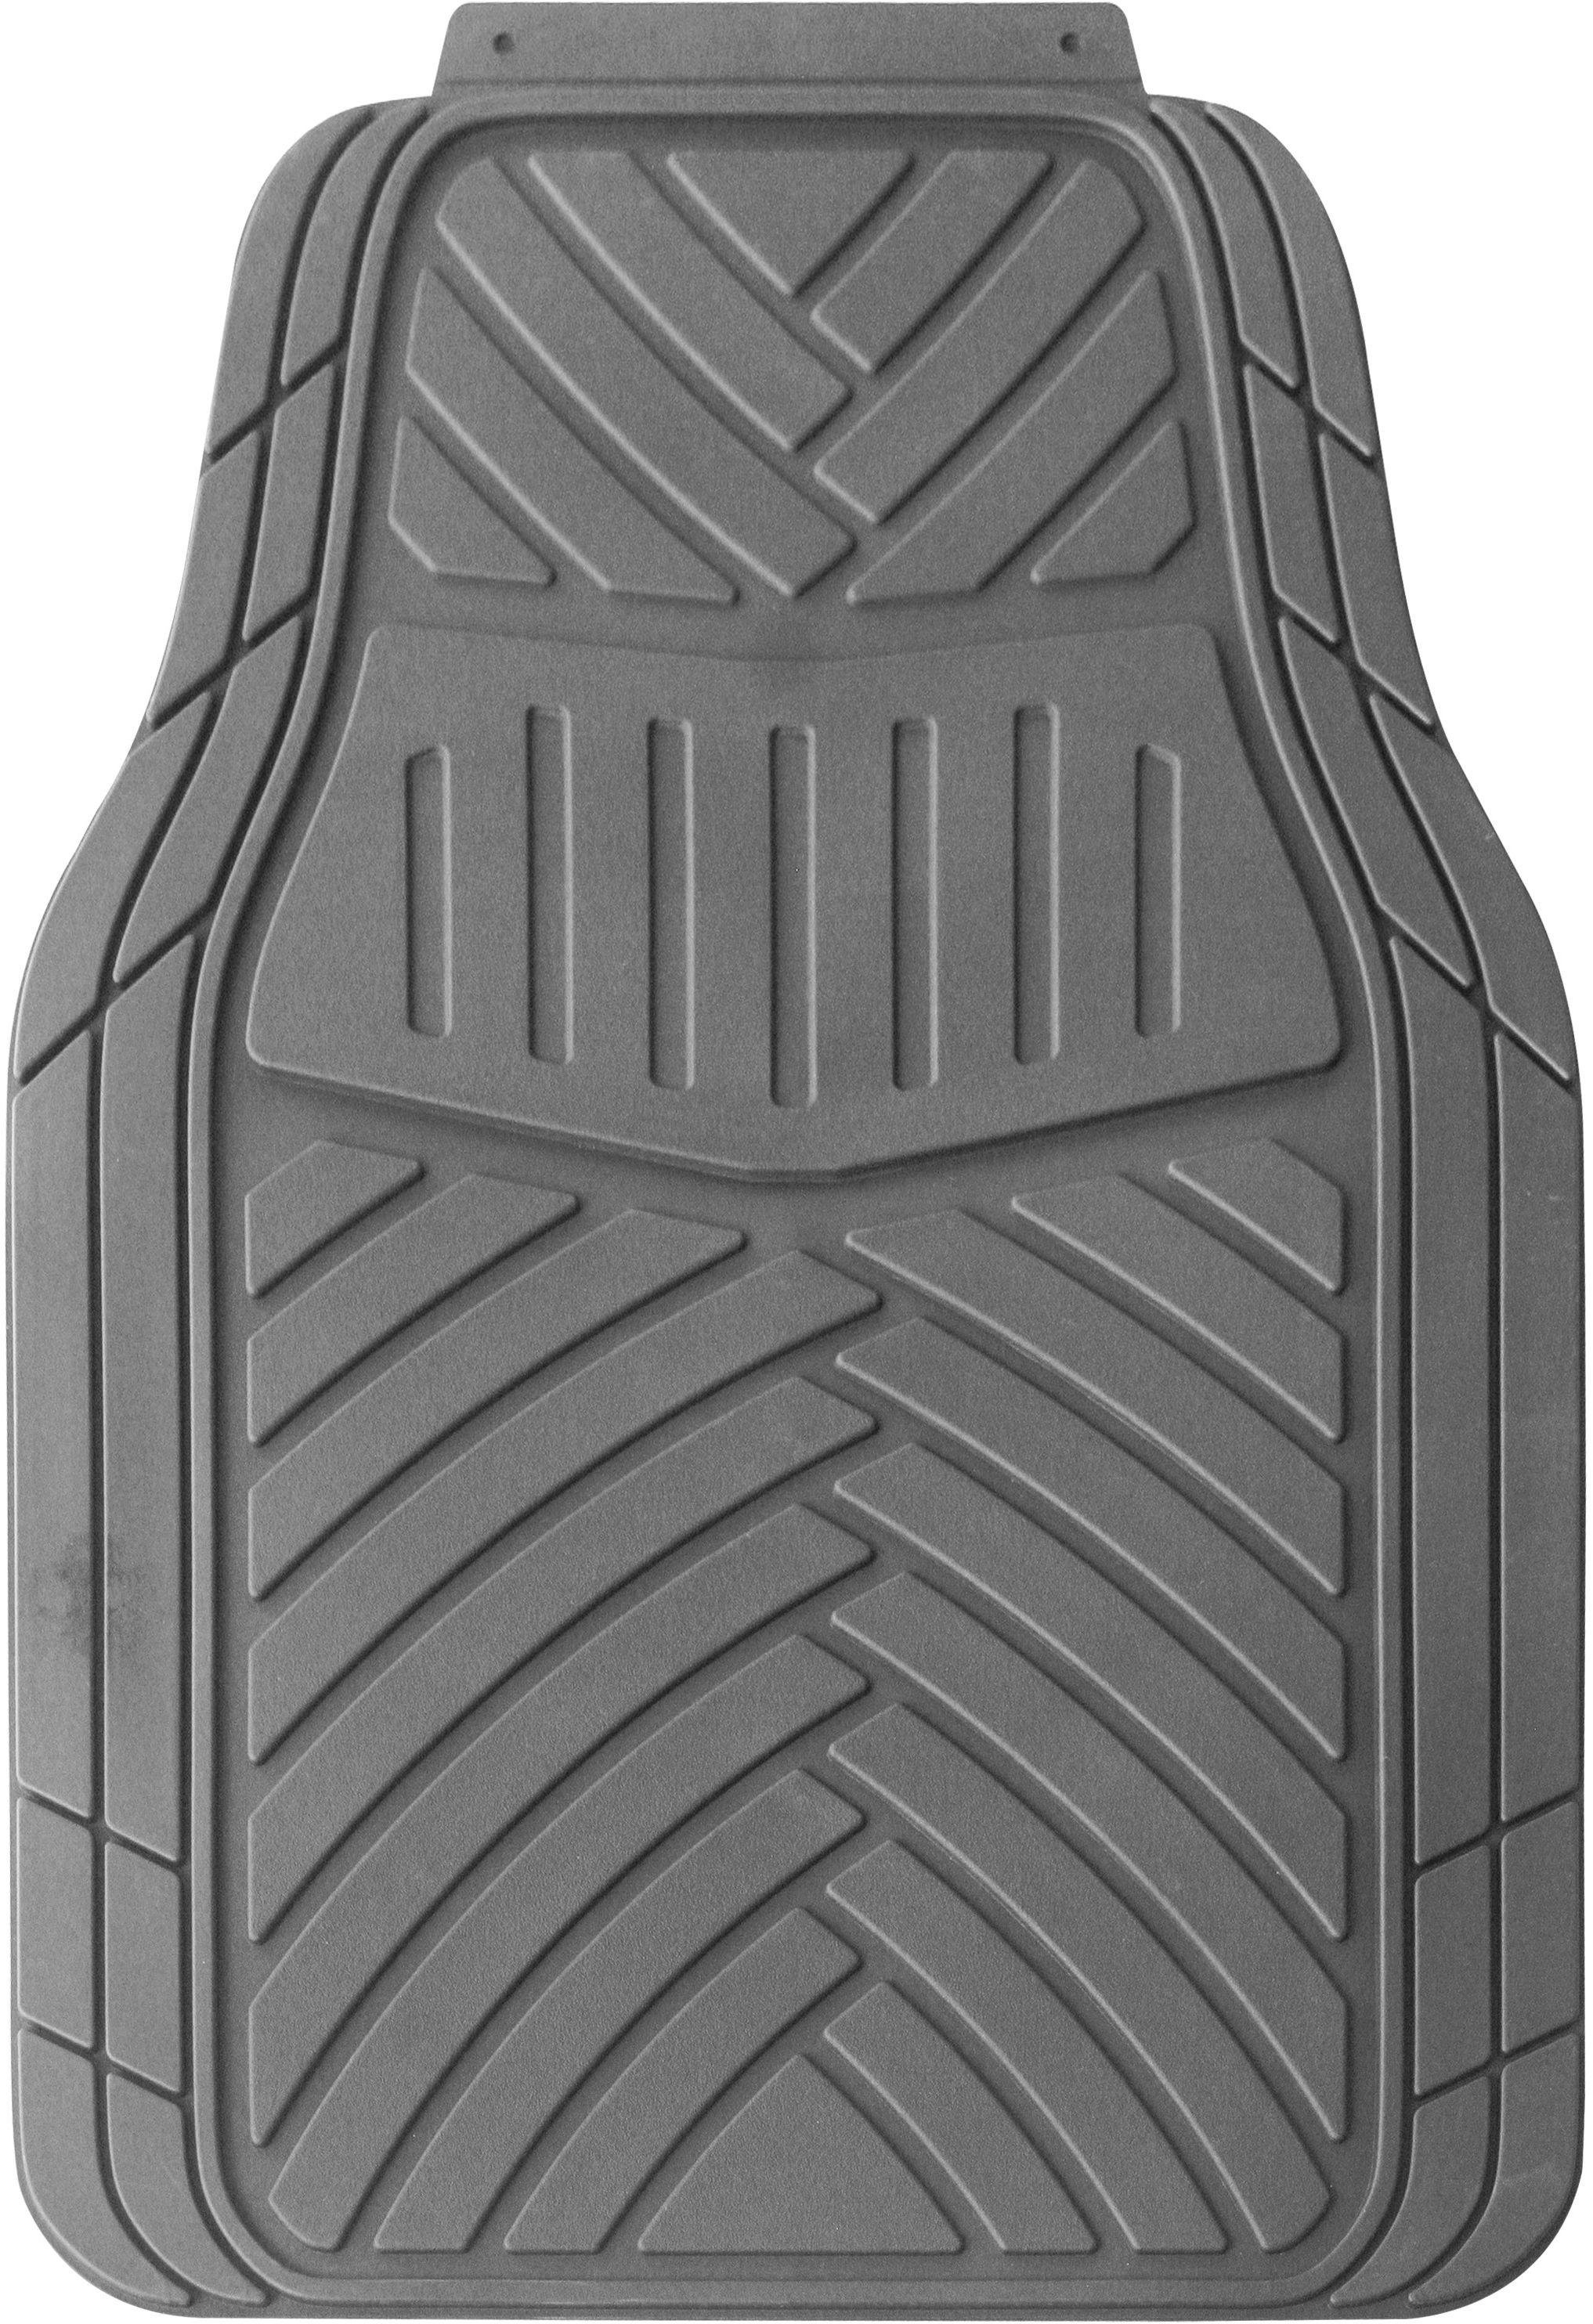 Image of Cosmos - Duro All Weather 4 Piece Car Mat Set - Grey